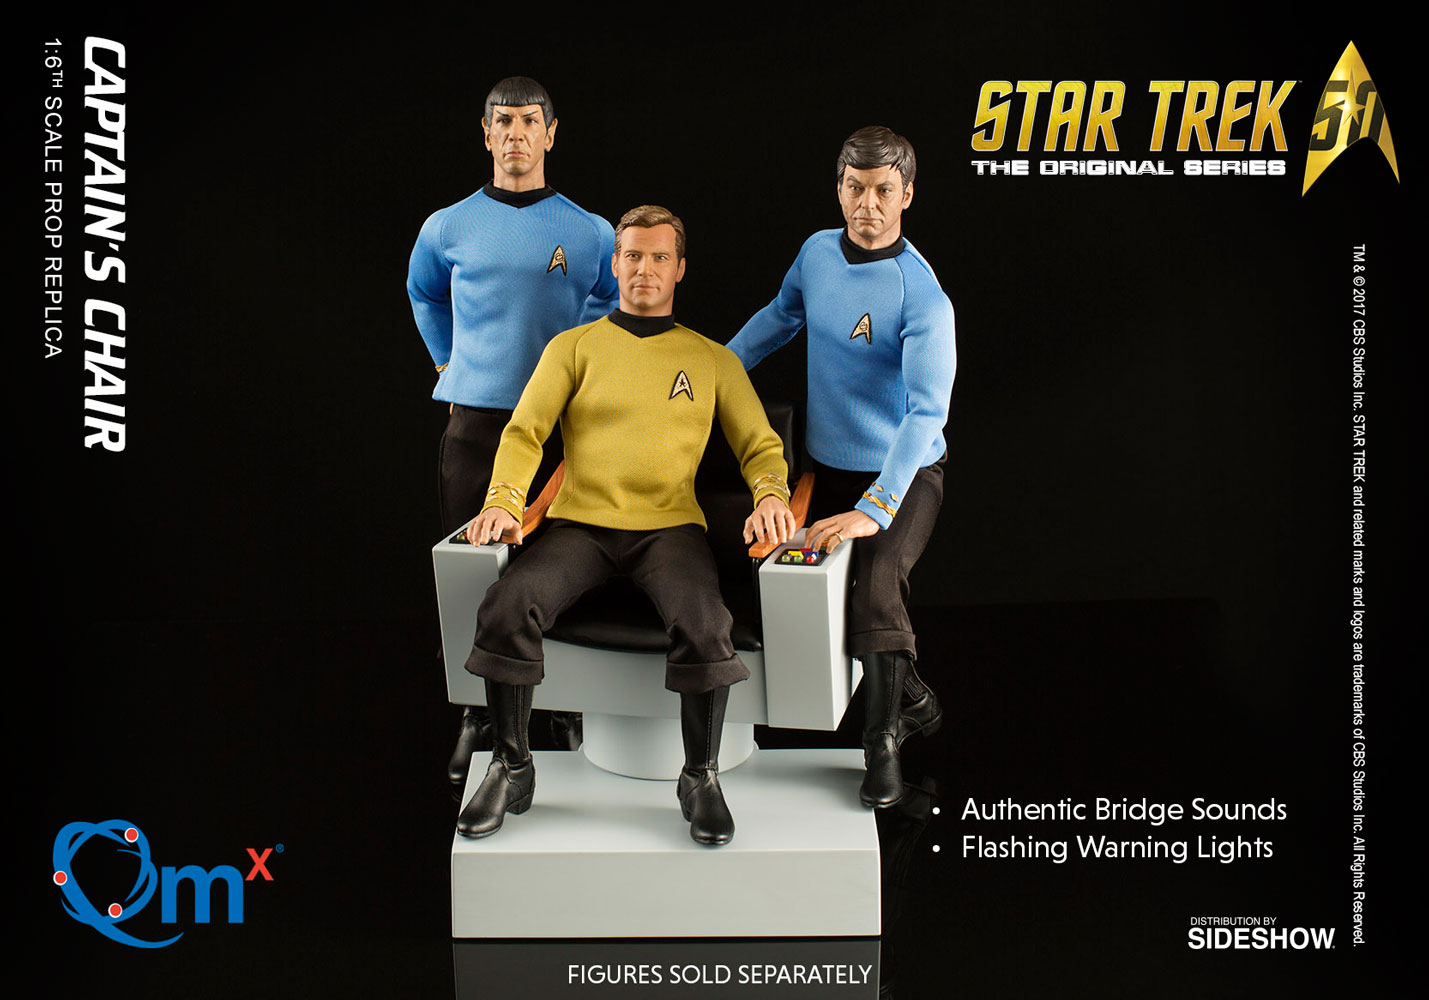 Star Trek Captains Chair Sixth Scale Figure Accessory by Qua